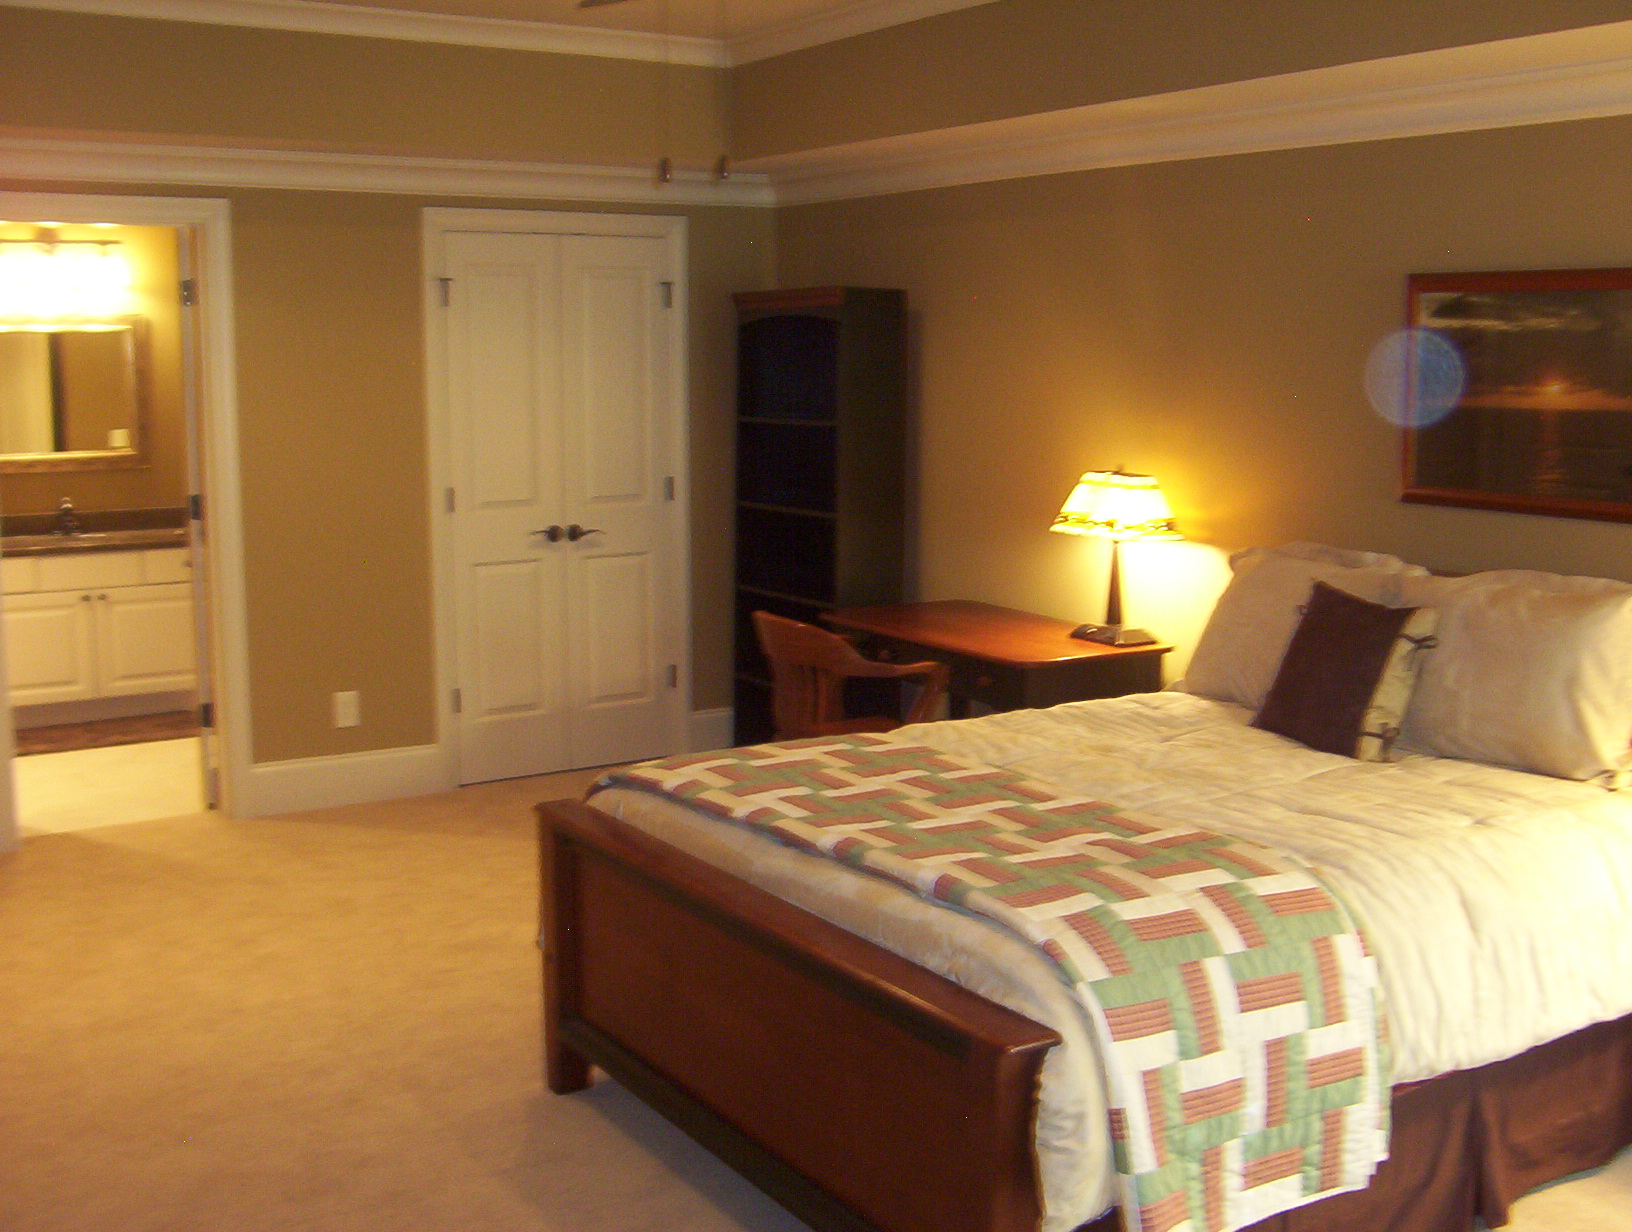 Bedroom Suite Basement Marietta Atlanta Home Completion